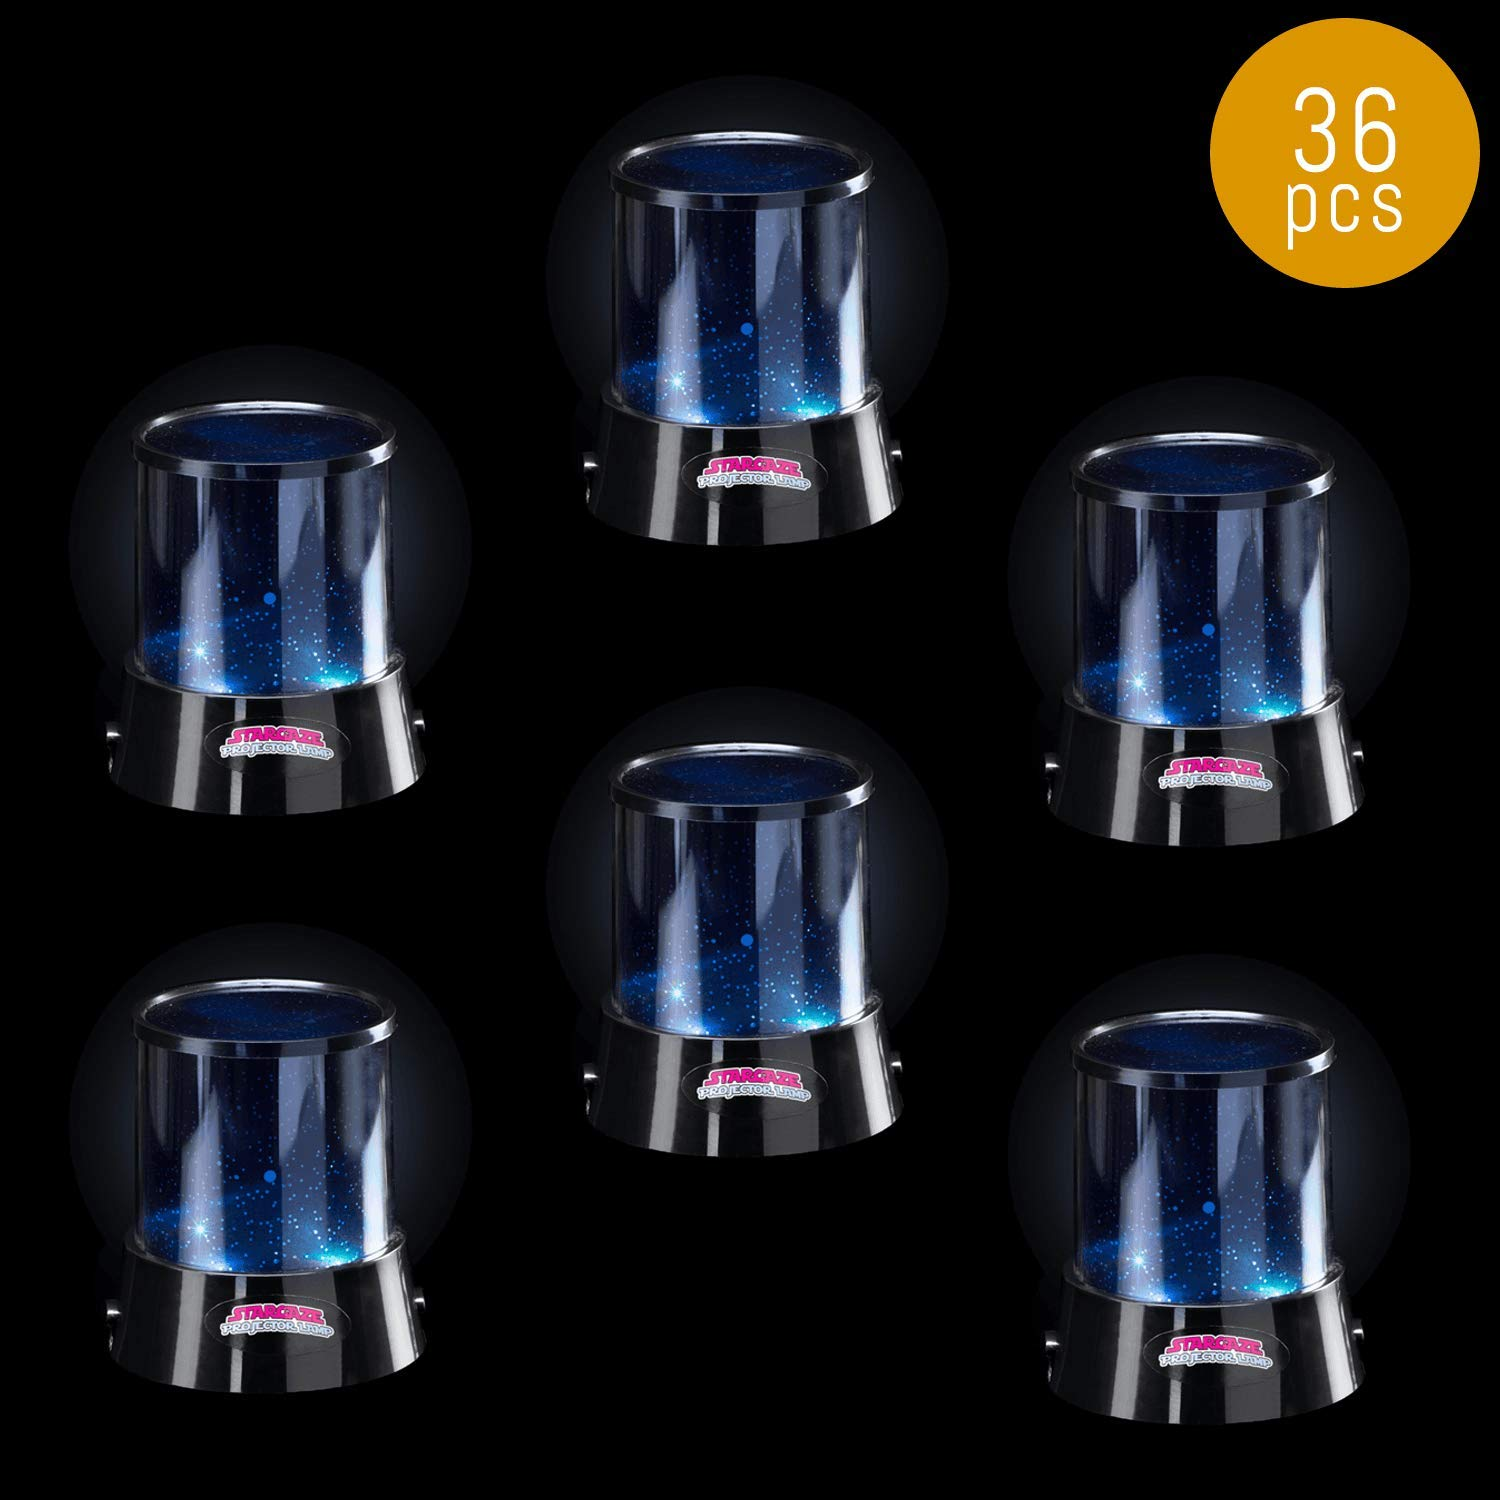 Lumistick LED Cosmic Star Projector Lamp | Rotating Colorful Romantic Cosmos Cover Ocean Star Kids Constellation Night Light (36 Lamps)